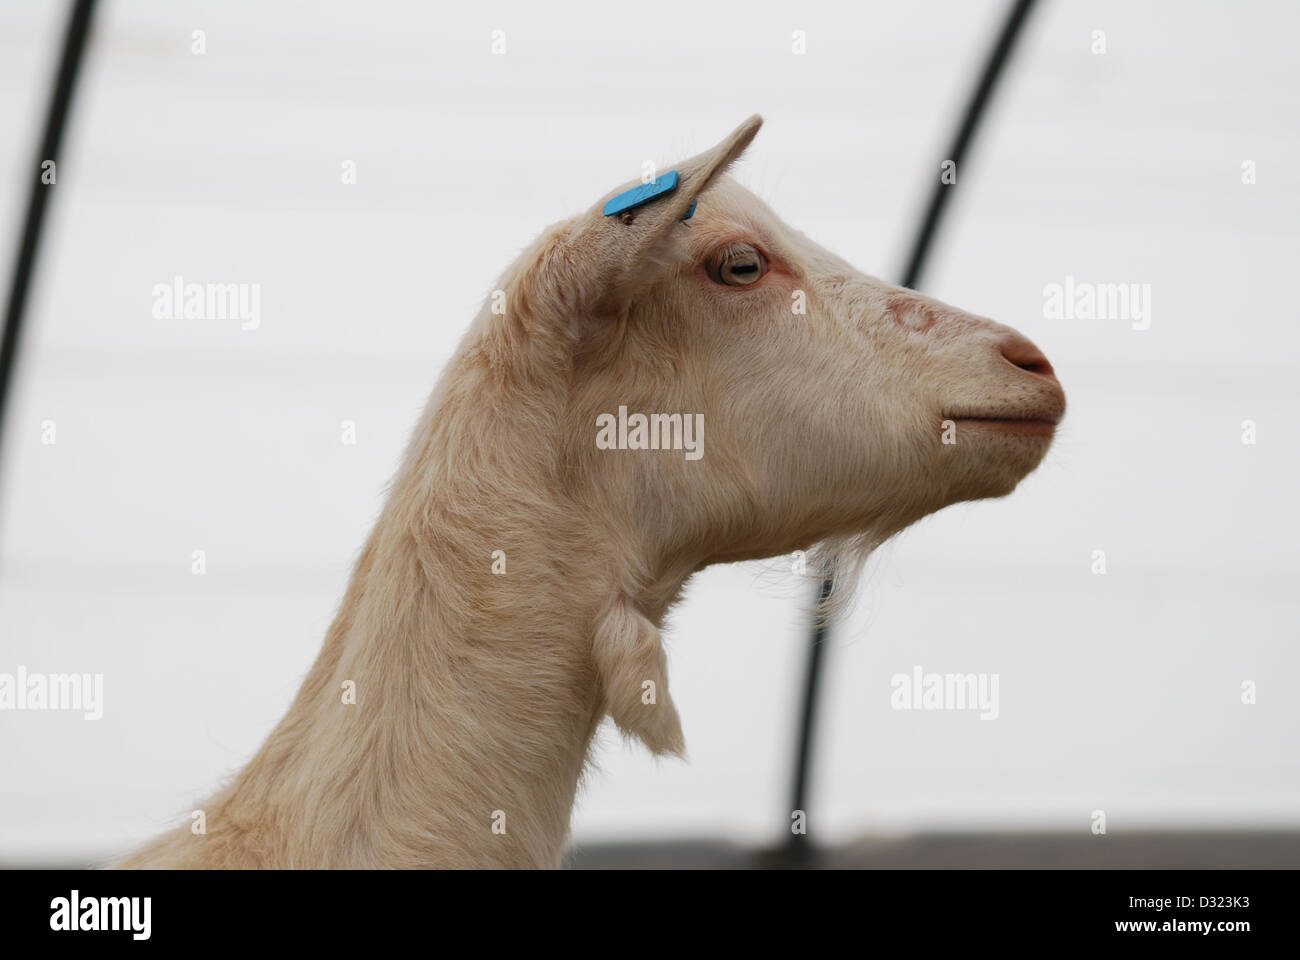 Goat Slaughter Stock Photos & Goat Slaughter Stock Images